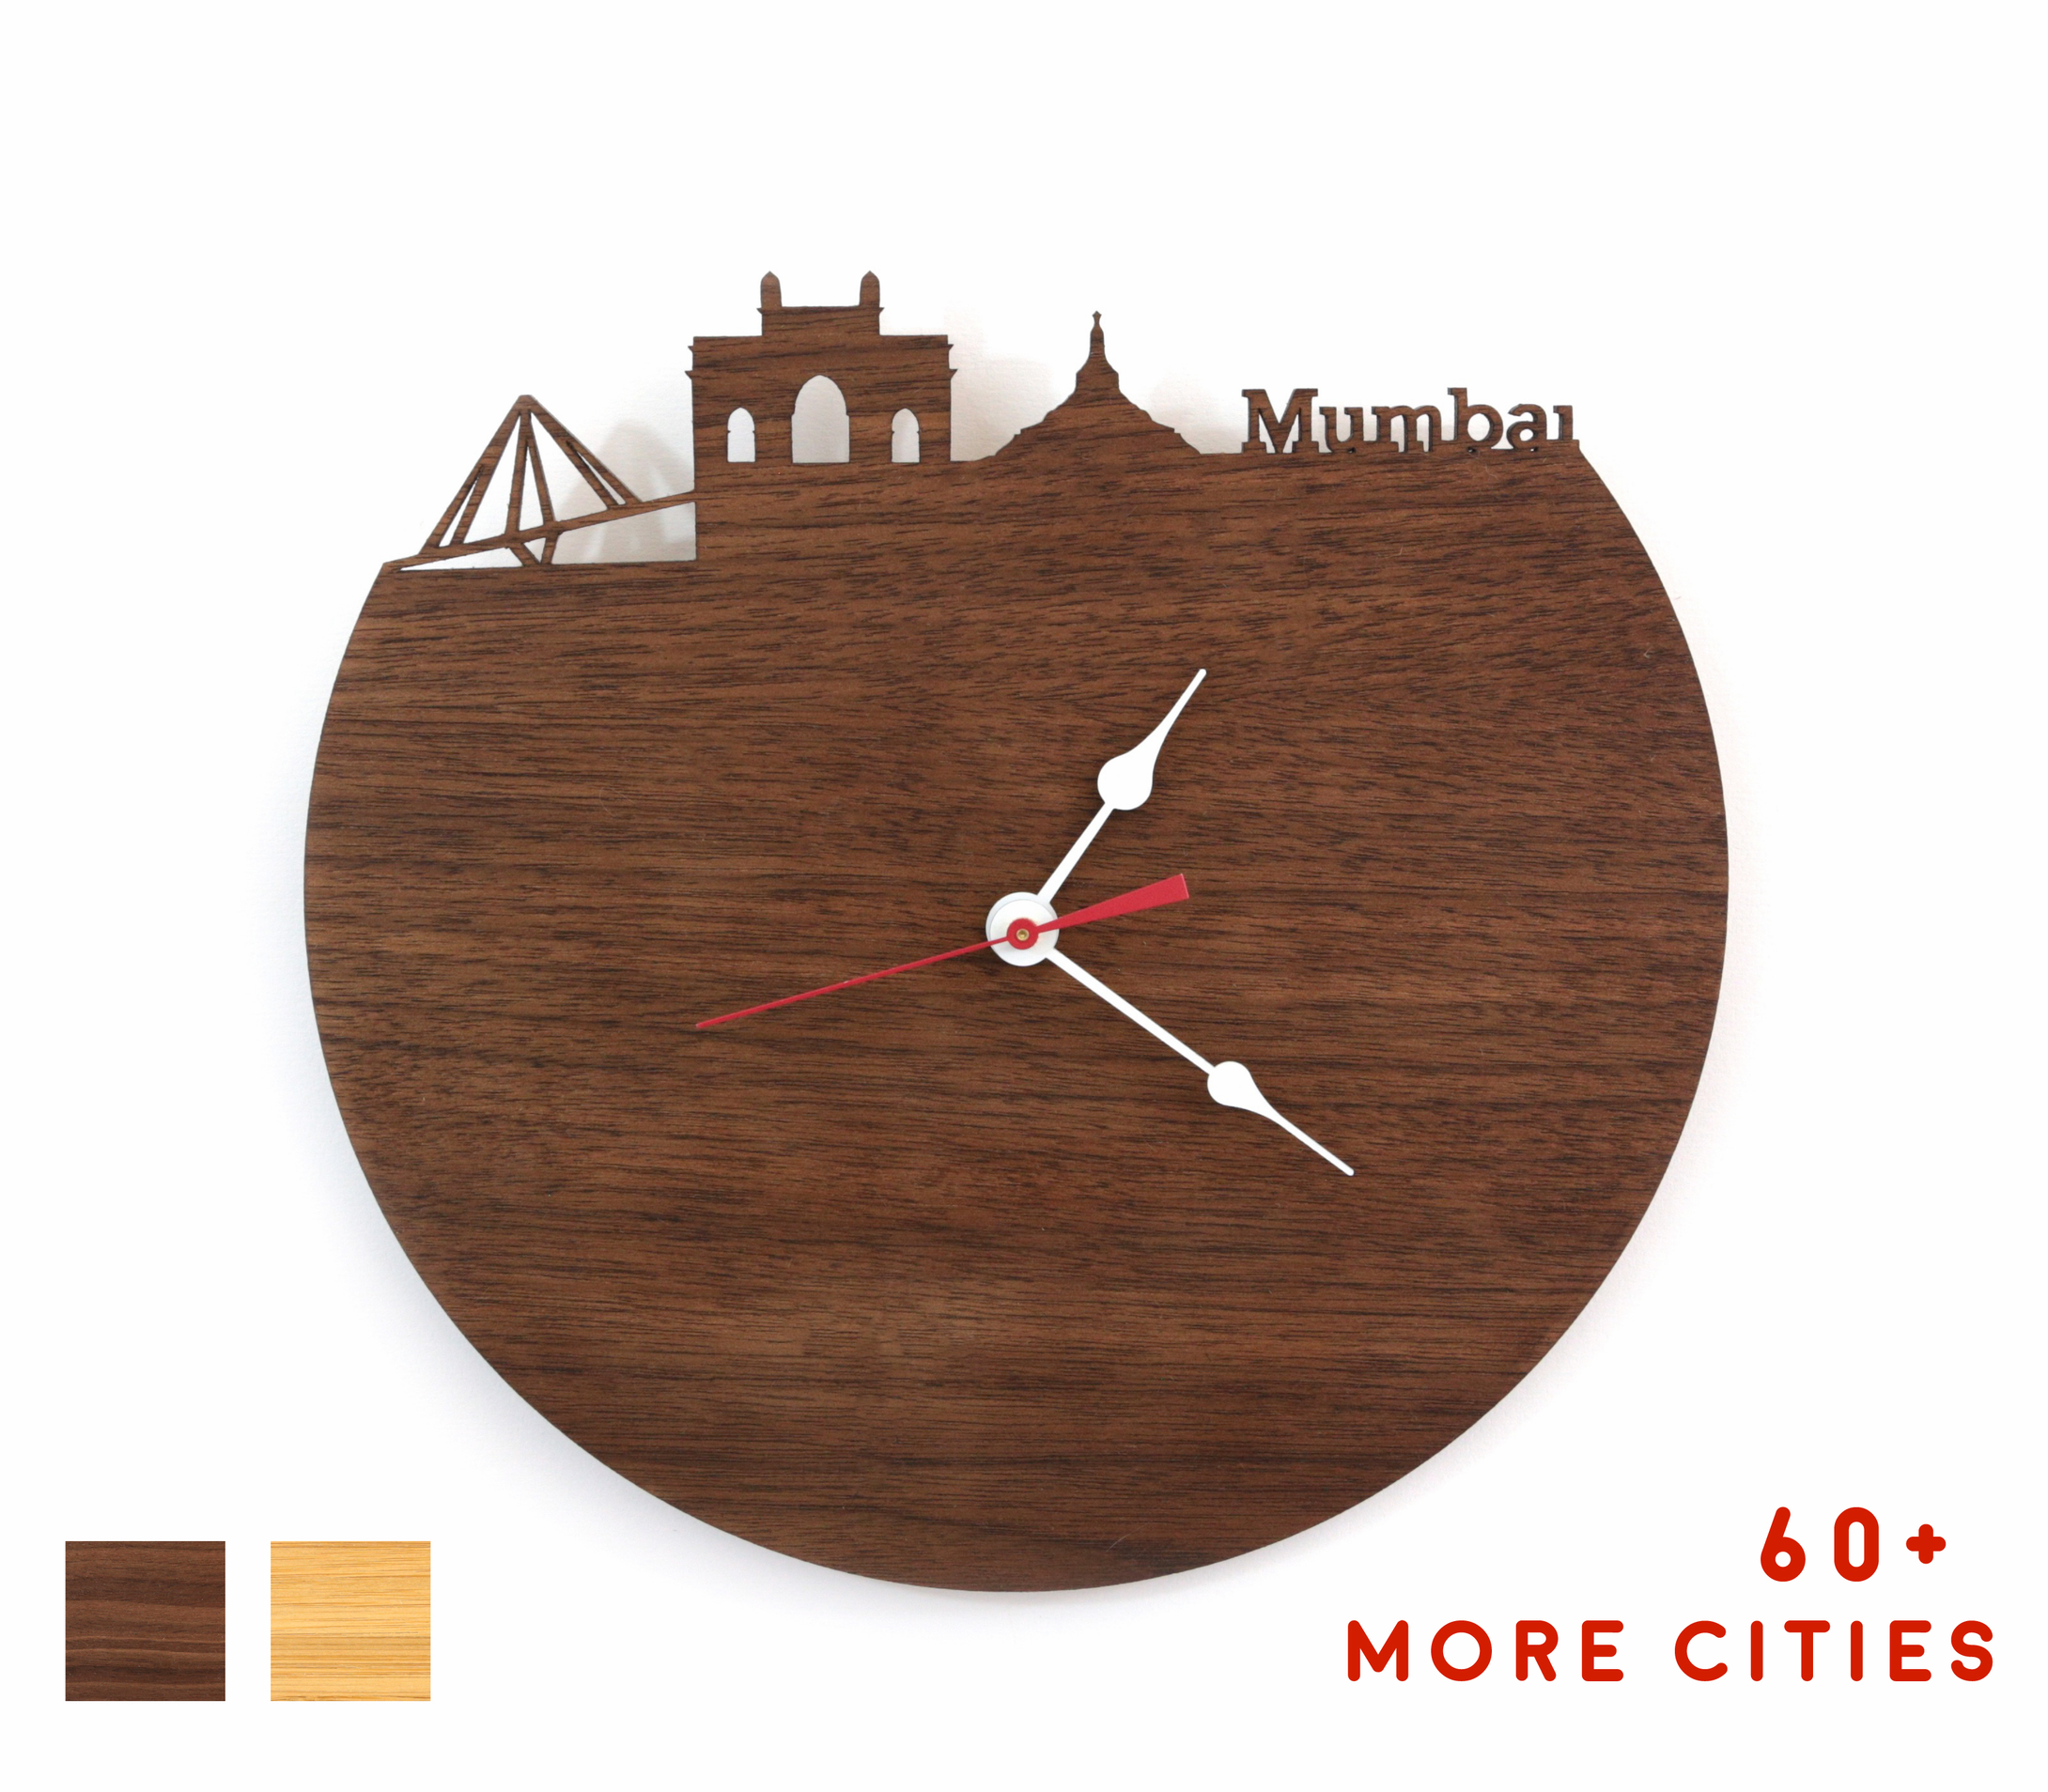 Mumbai Skyline Time Zone Clock - Cityscape Art Clock - Long Distance Relationship Gift